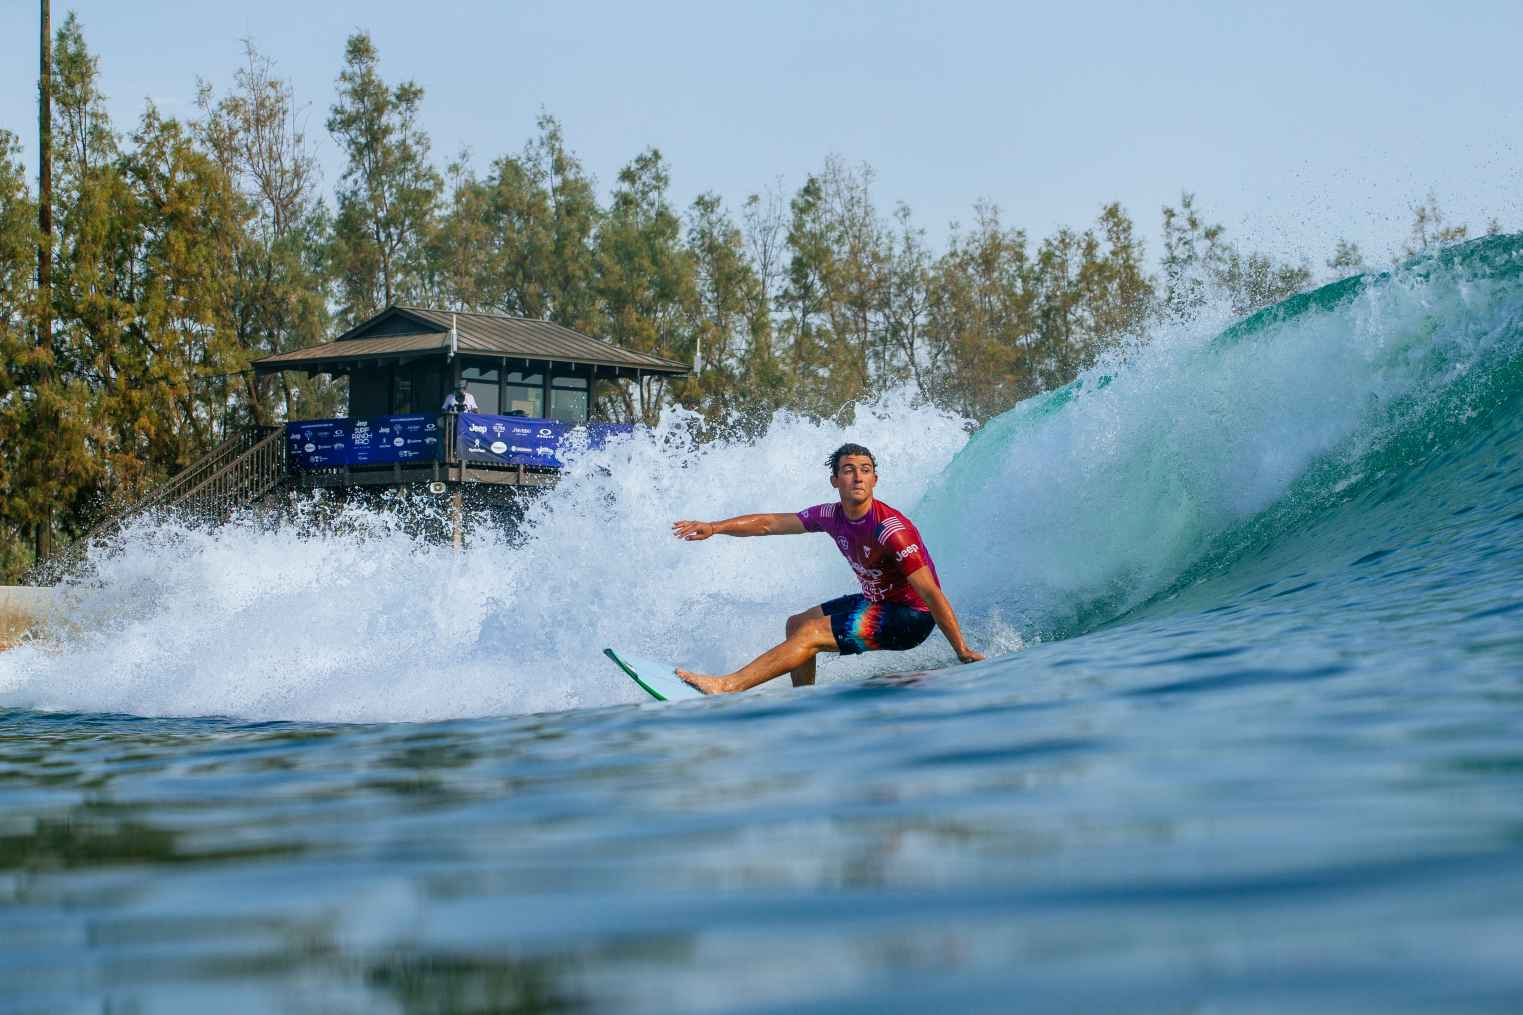 surf30 surf ranch pro 2021 wsl surf Colapinto G Morris21Ranch 6275